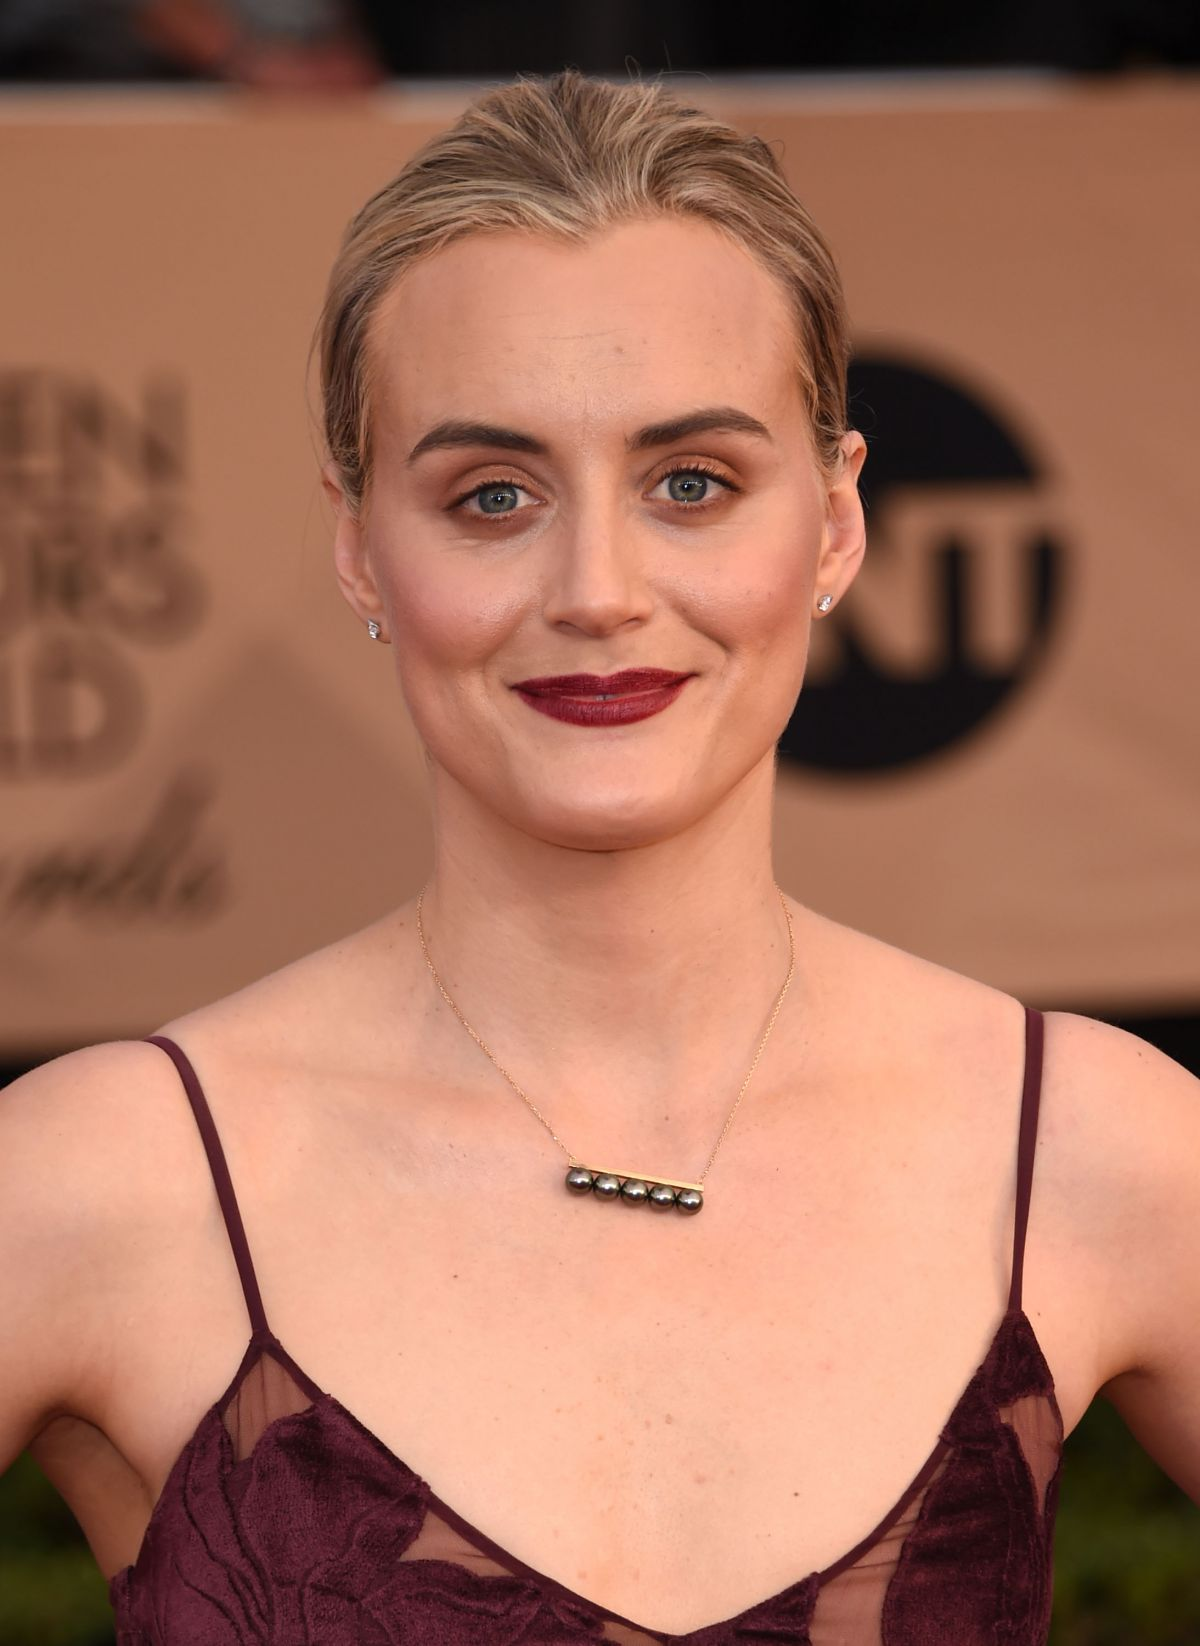 TAYLOR SCHILLING at 23rd Annual Screen Actors Guild Awards ...Taylor Schilling Age